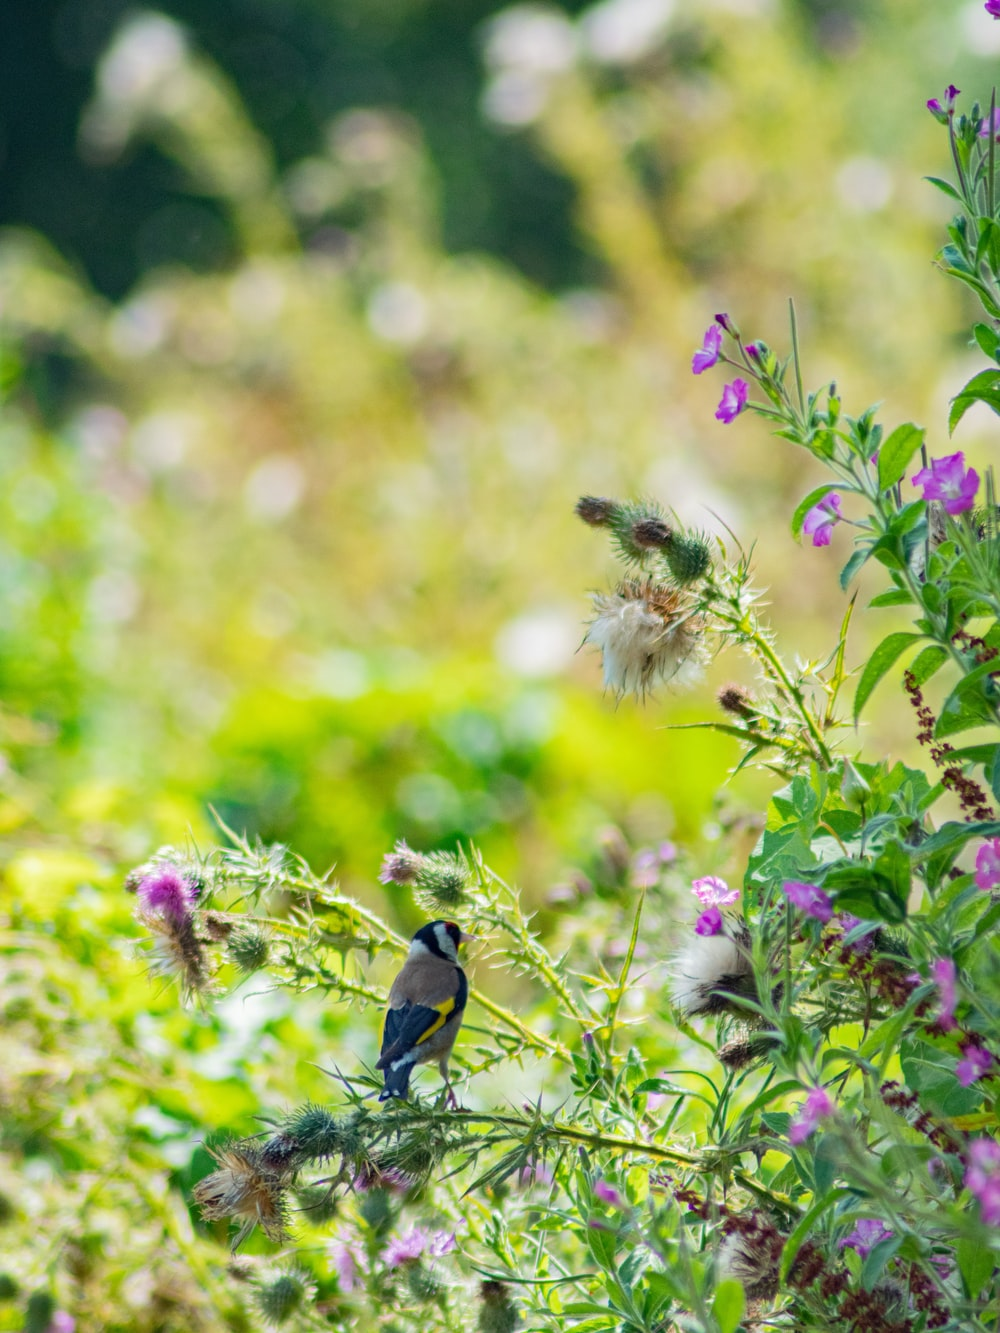 bird in a flower plant close-up photography